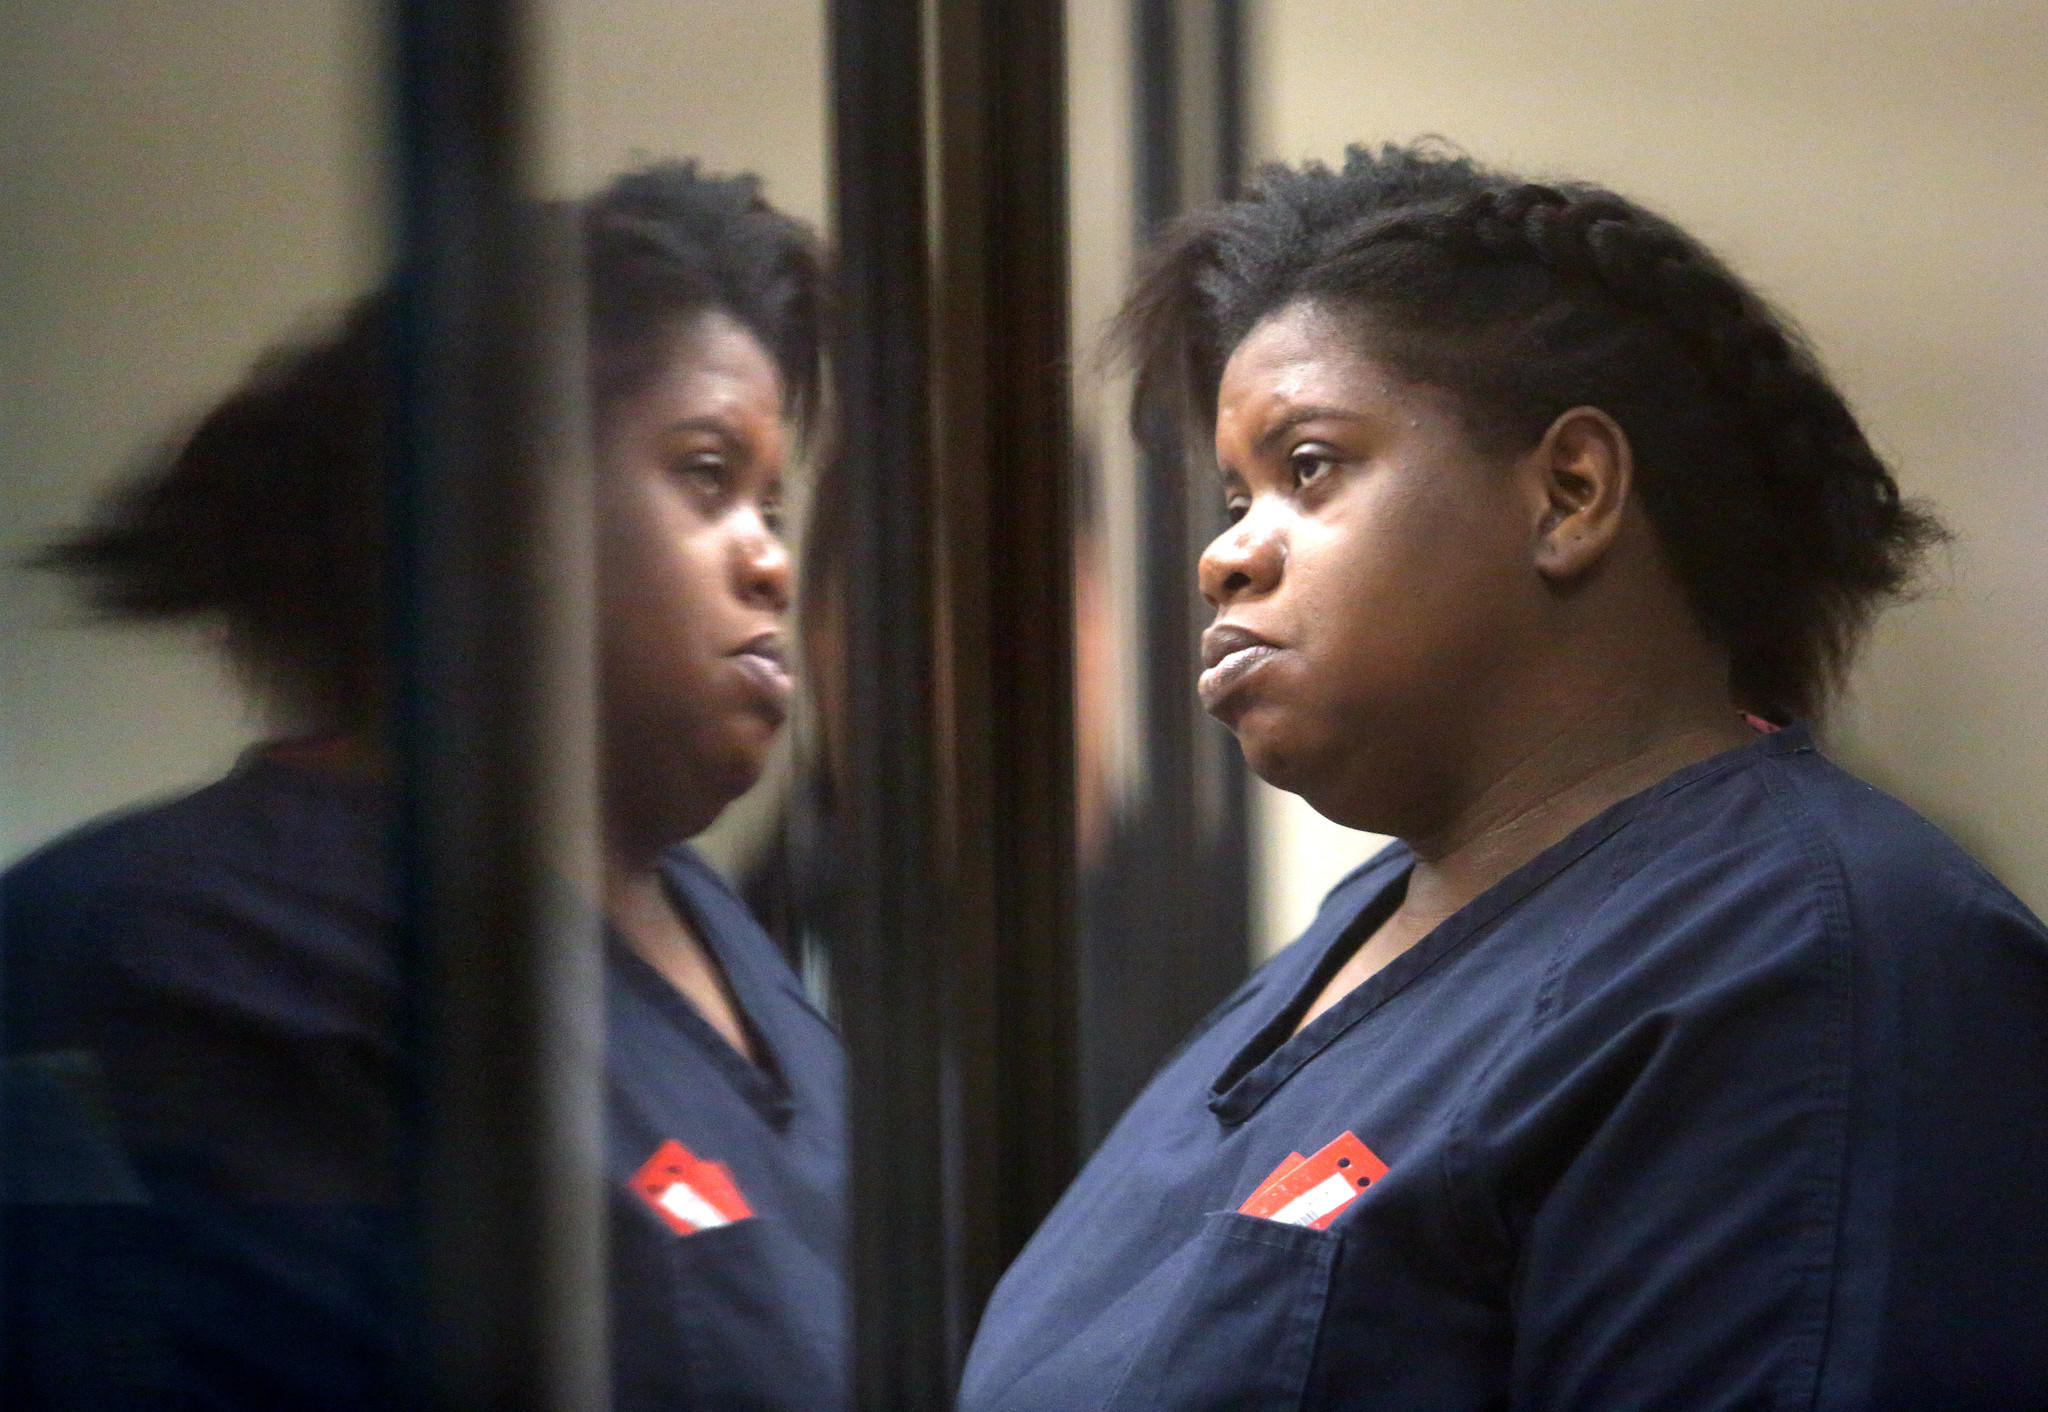 Rachel Fryer, charged in the death of her child, makes a first appearance in circuit court from the Seminole County Jail, in Sanford, Tuesday, February 11, 2014. (Joe Burbank/Orlando Sentinel)